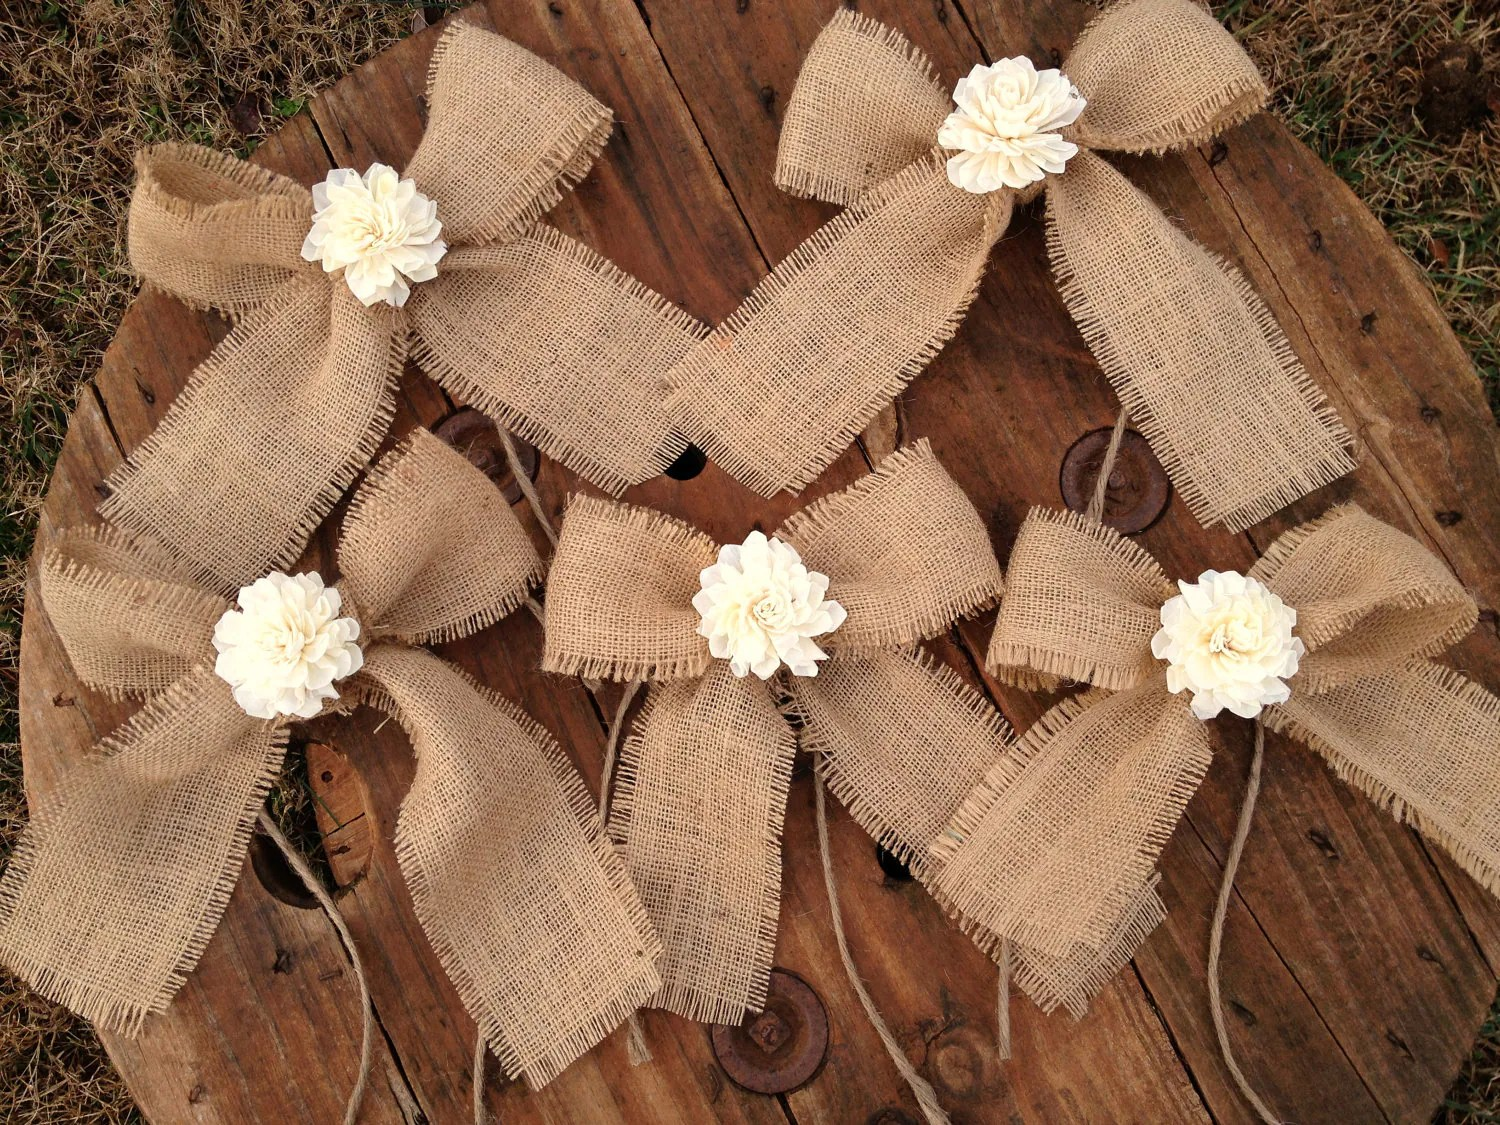 burlap bows for wedding chairs hickory chair dallas design center sola flower shabby chic decor